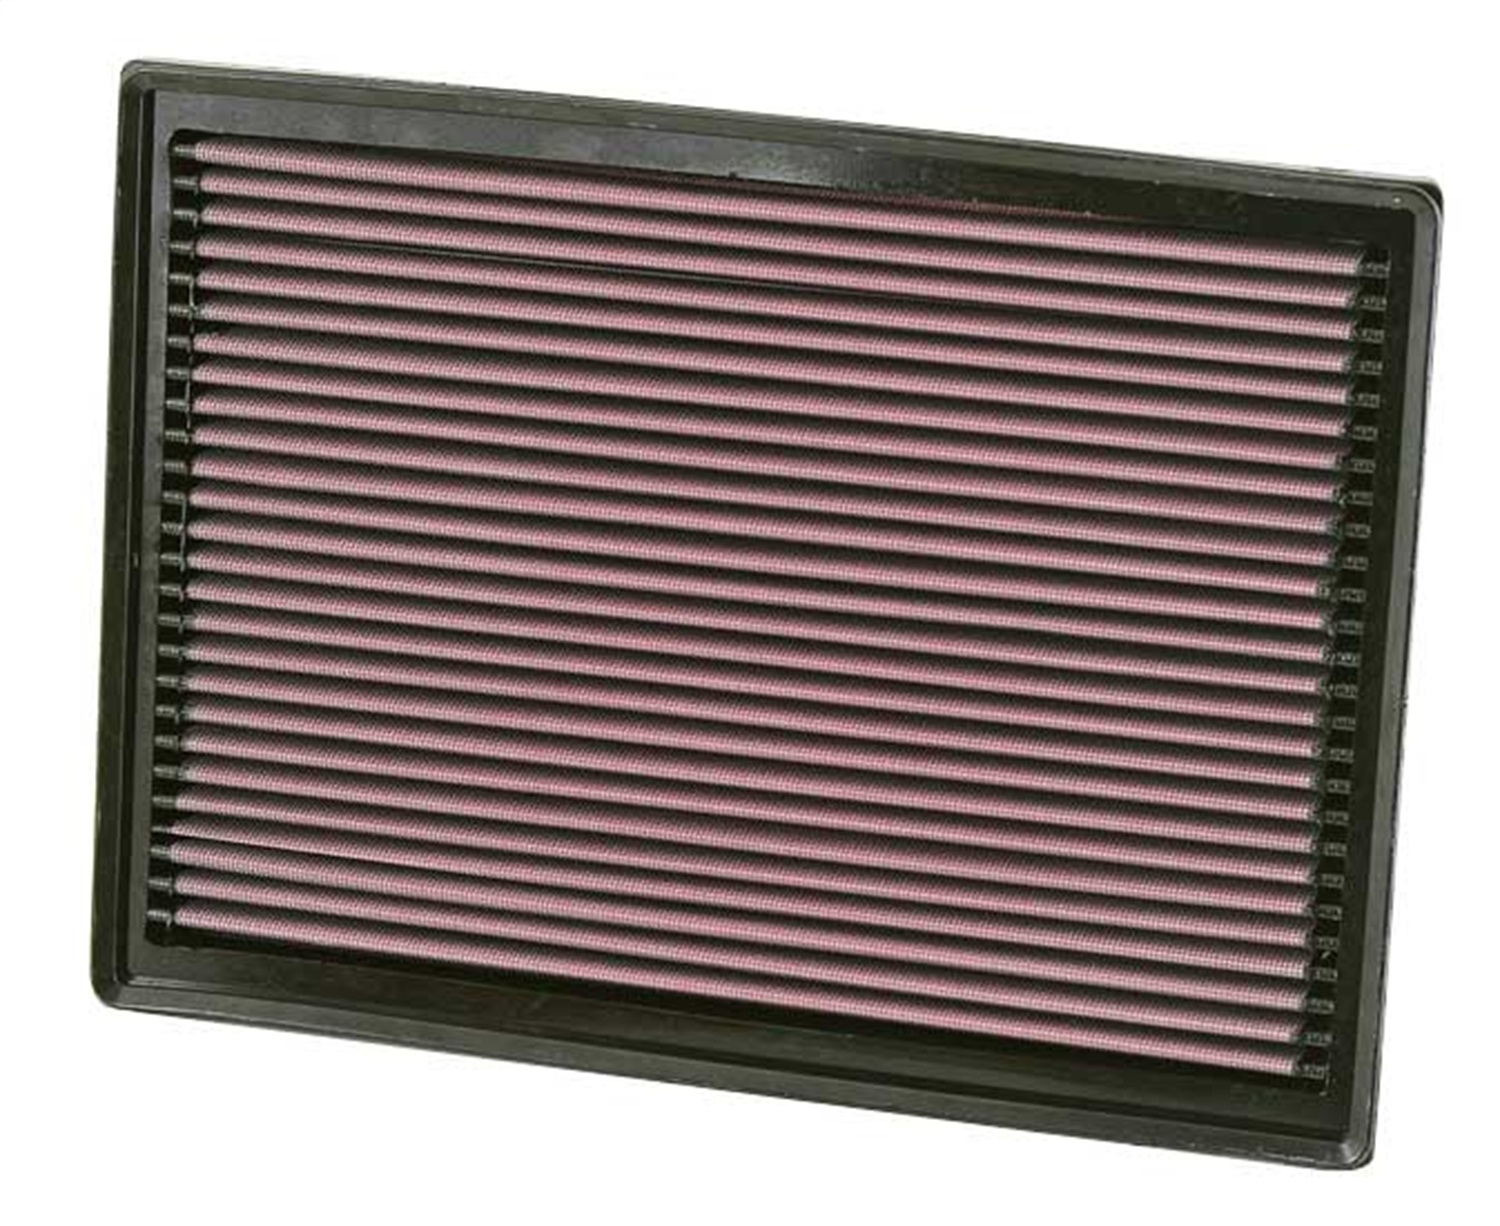 K&N Filters 33-2391 Air Filter Fits 07-15 Sprinter 2500 Sprinter 3500 33-2391